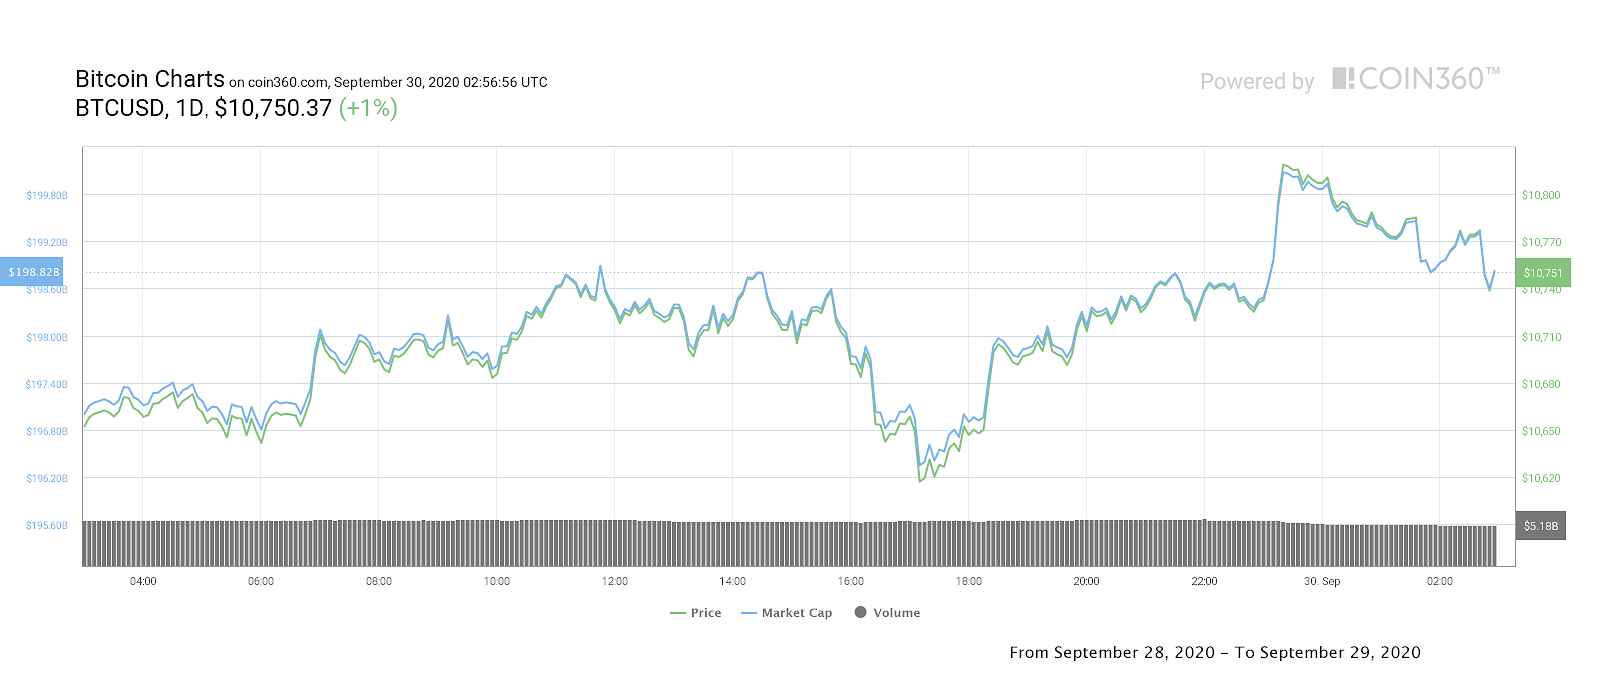 Bitcoin price daily performance